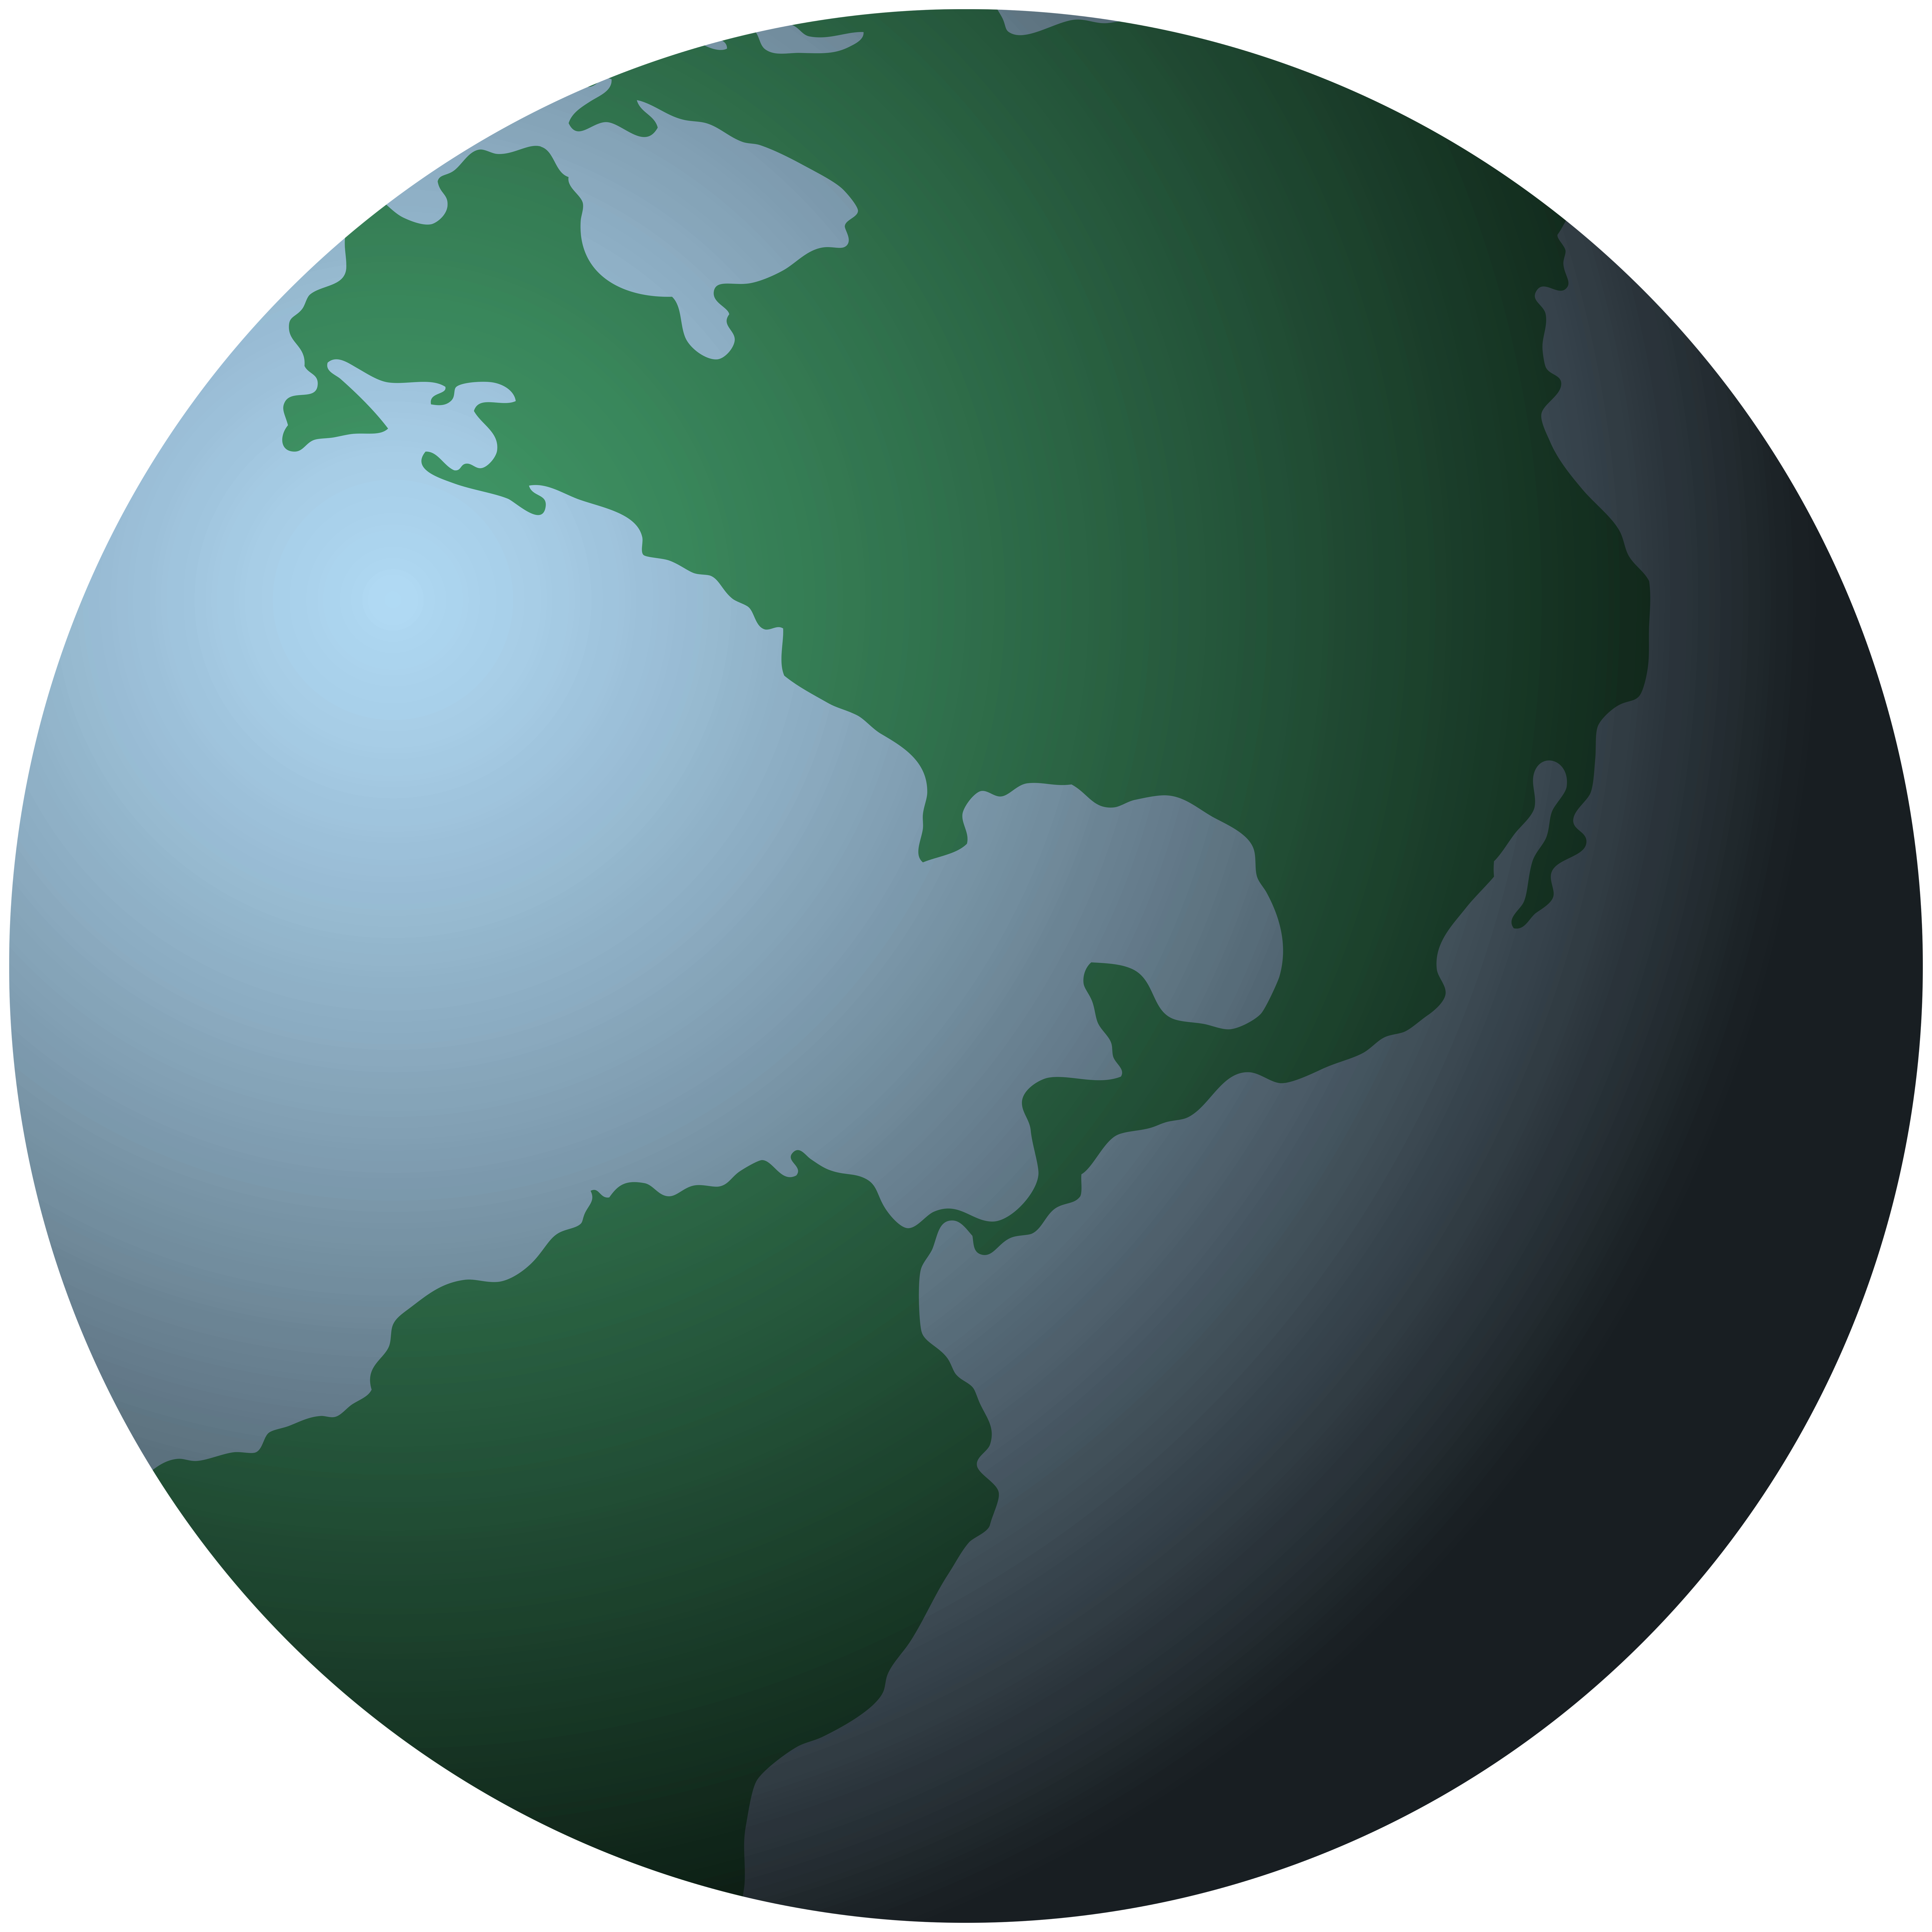 Png clip art best. Clipart earth high quality